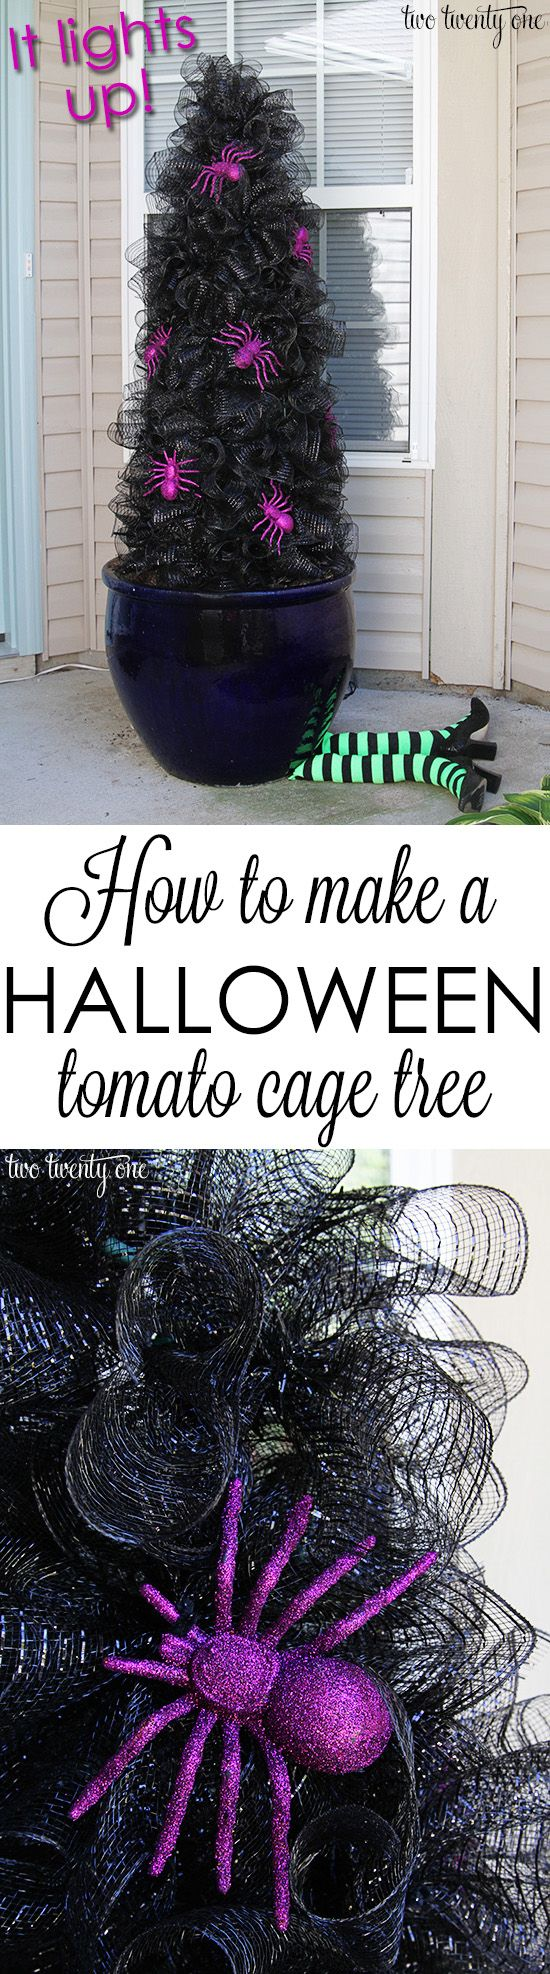 How to make a Halloween tomato cage tree!